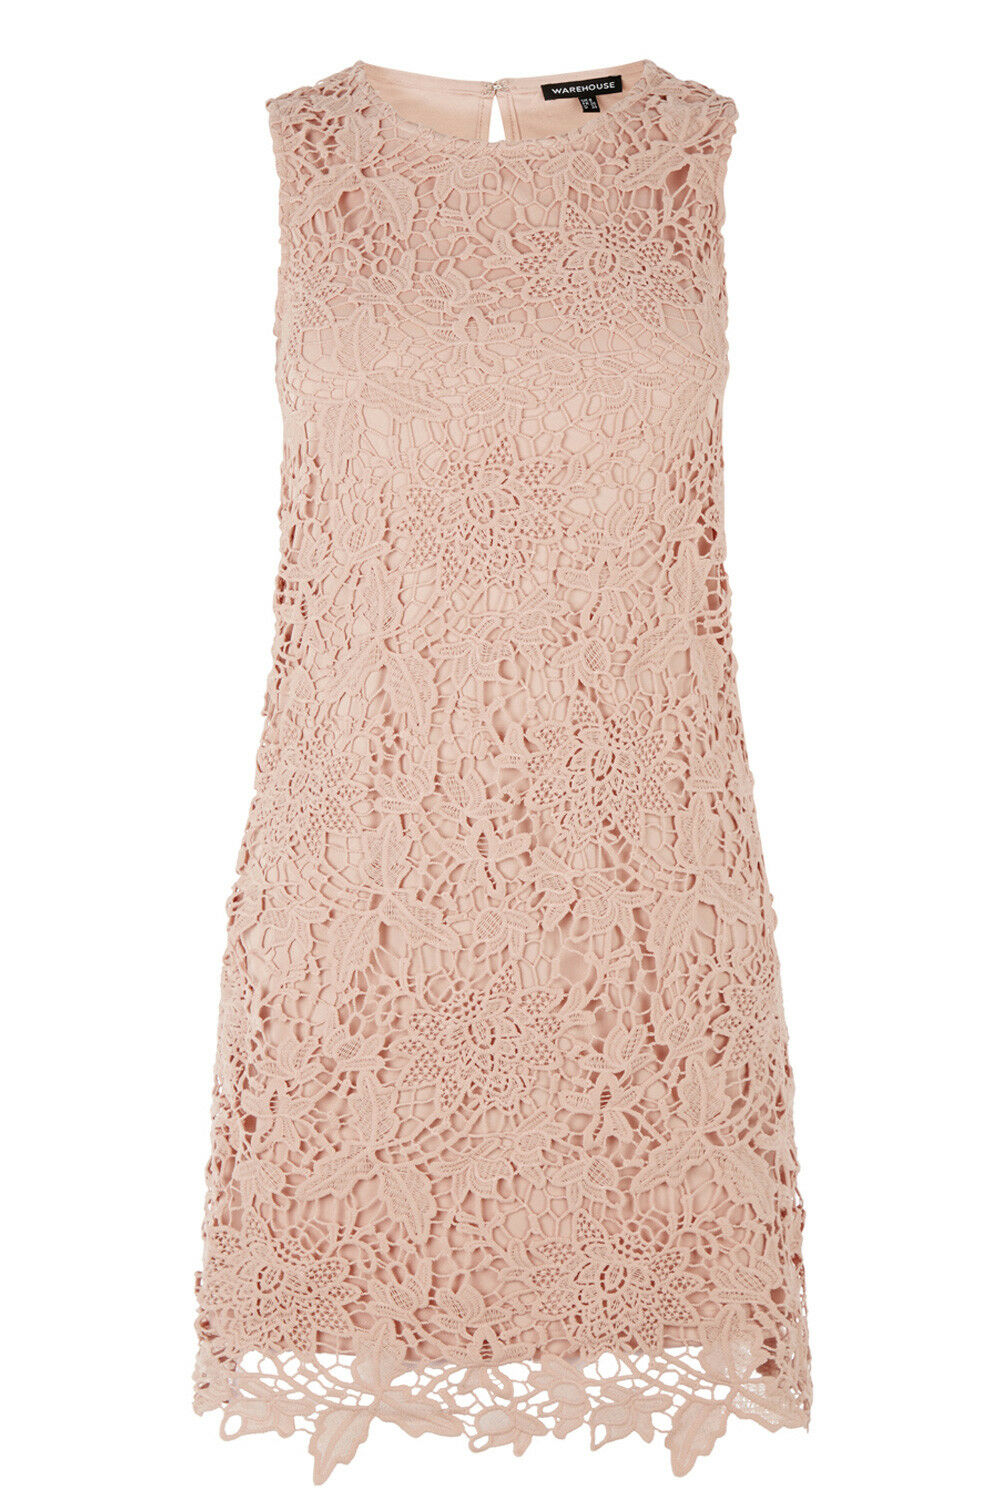 BNWT WAREHOUSE PINK LEAF LACE DRESS SIZE 10 RRP